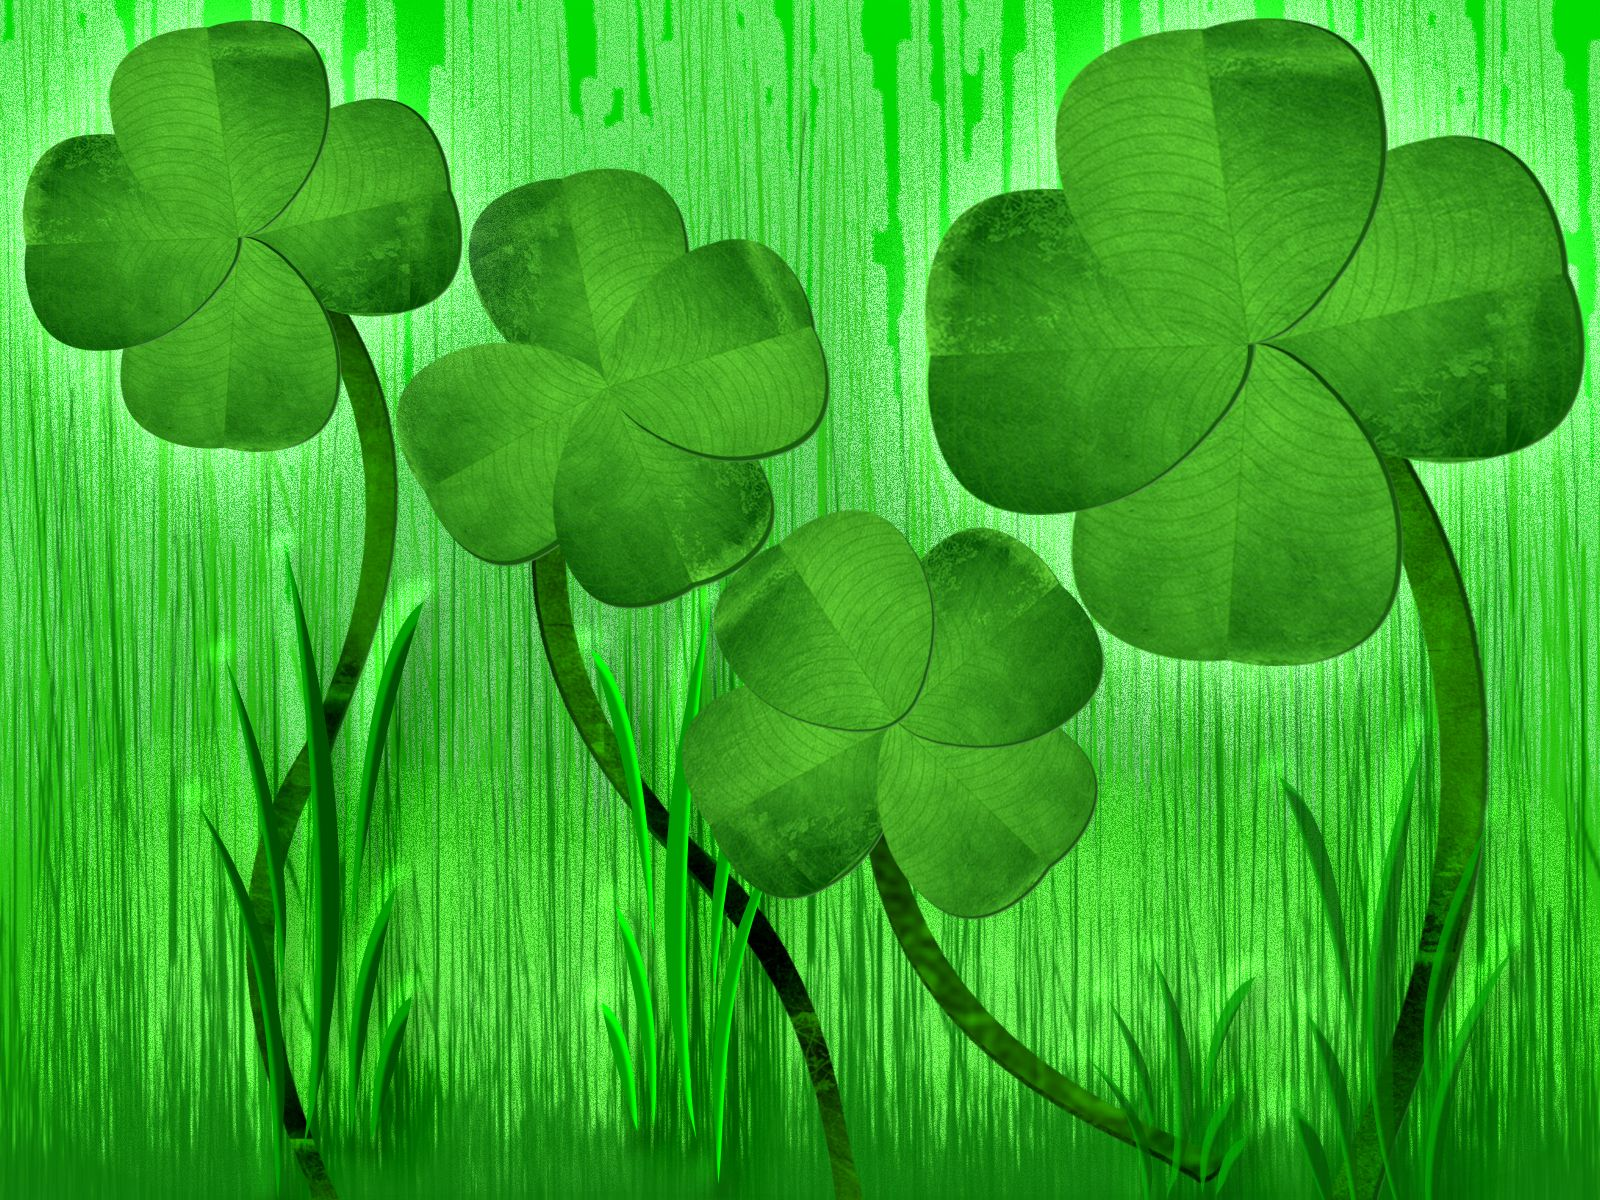 Four Leaf Clover Wallpapers - Top Free